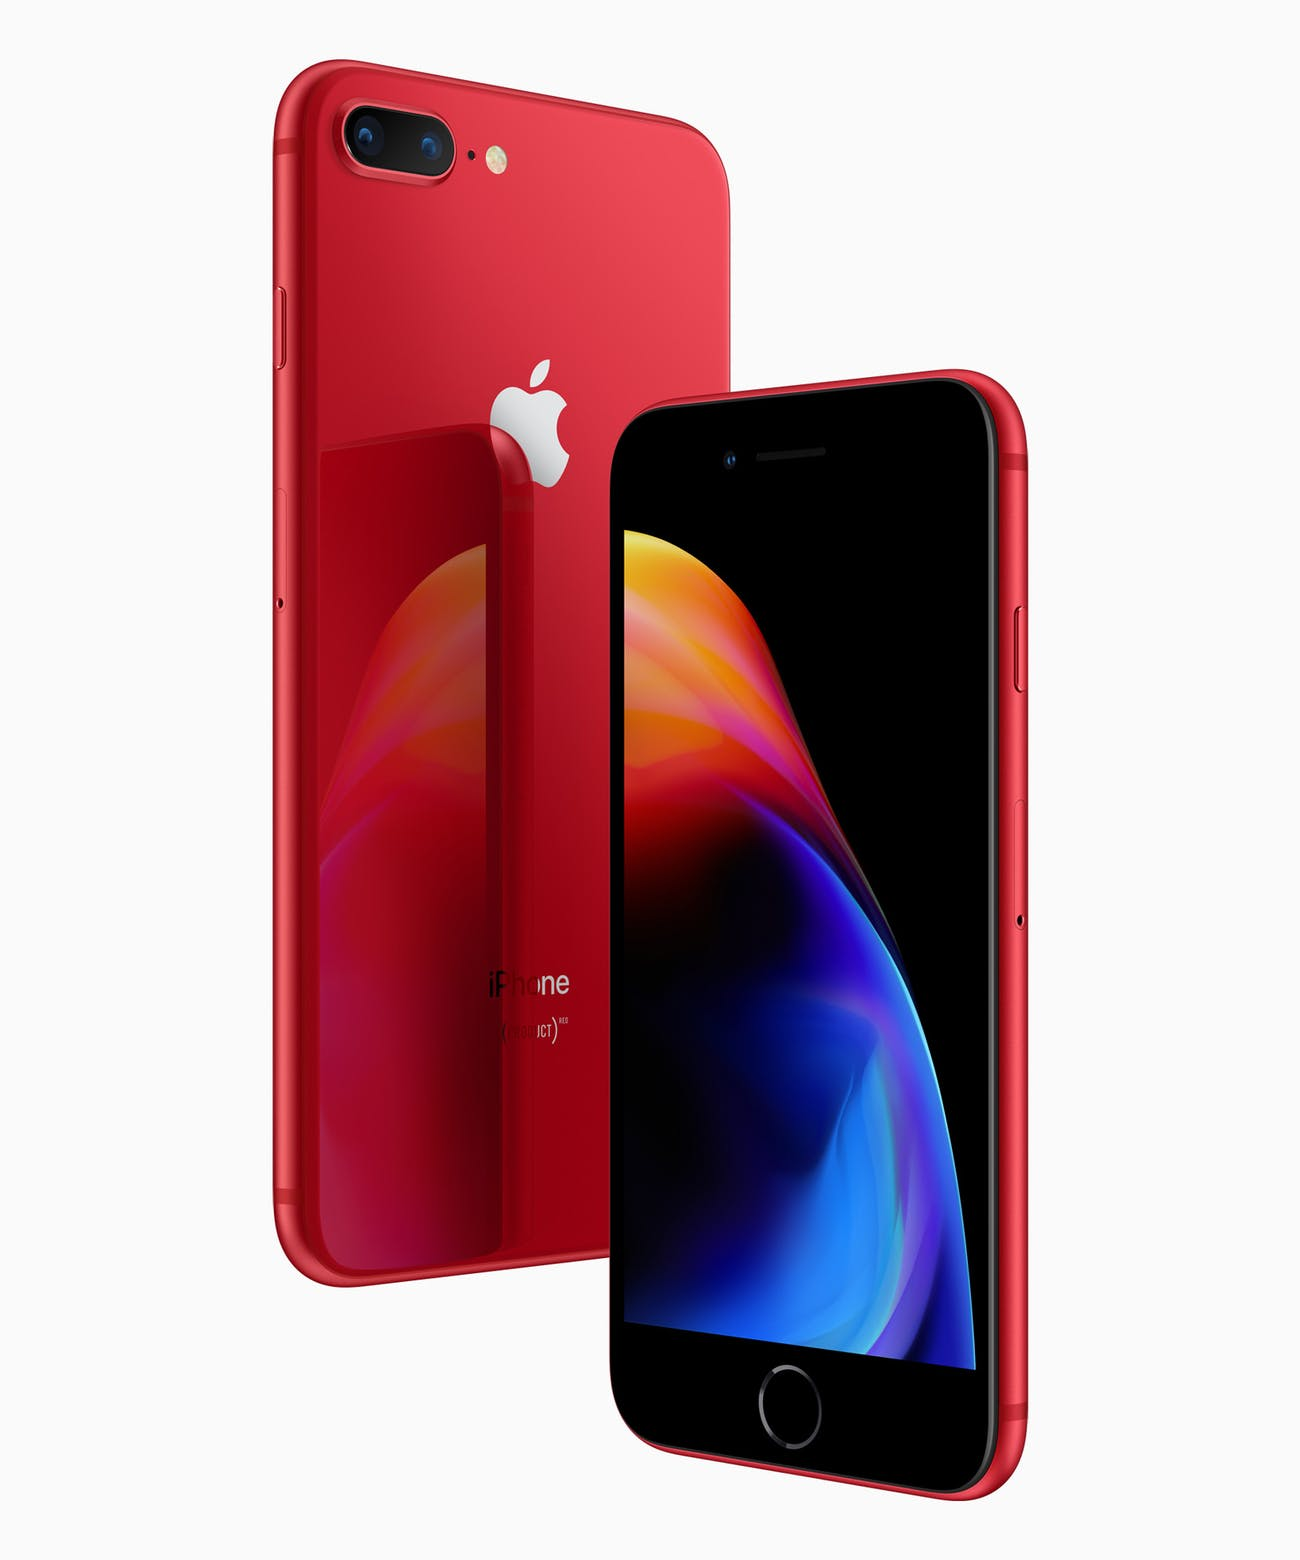 The red iPhone 8.